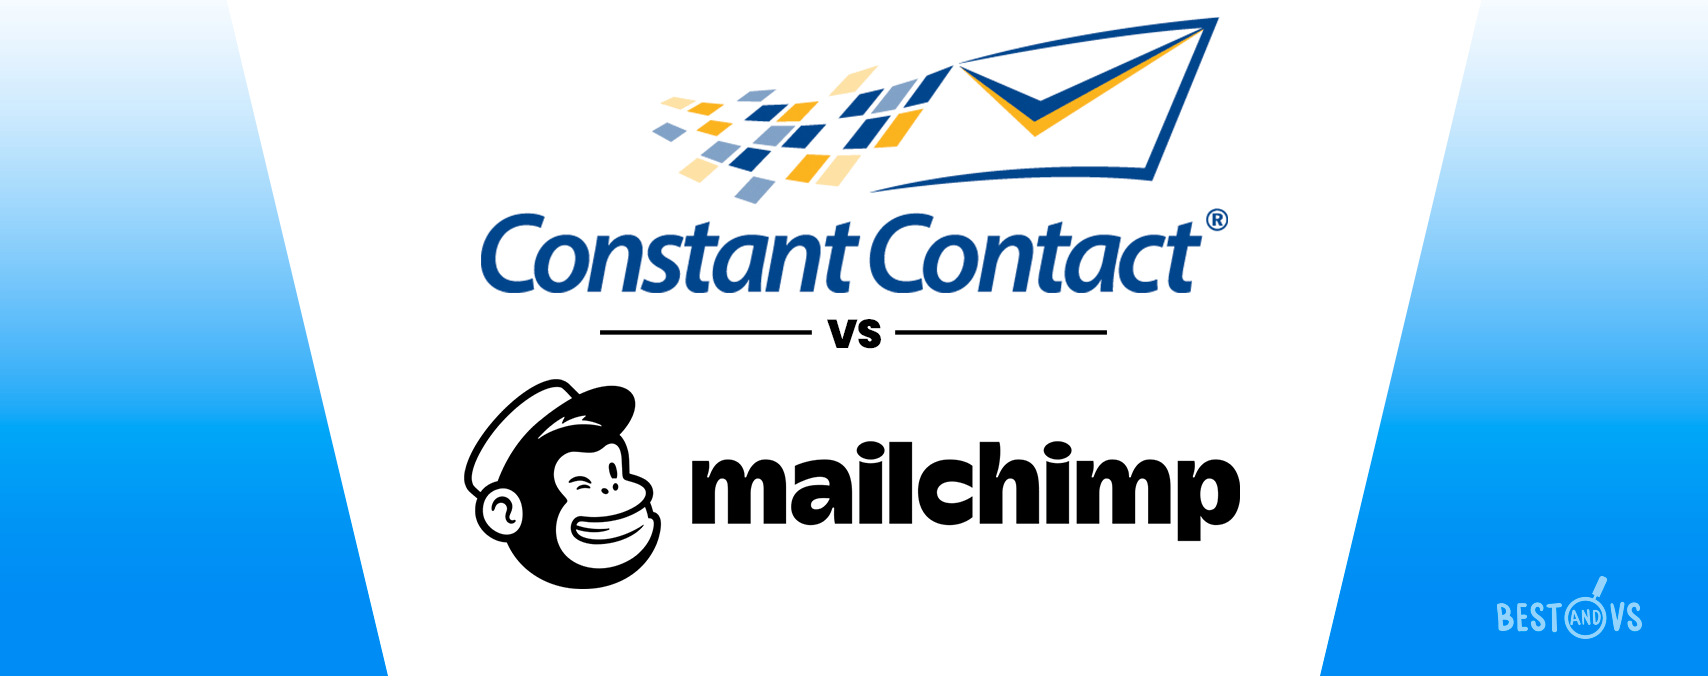 Constant Contact VS MailChimp (2019) Review and Comparison